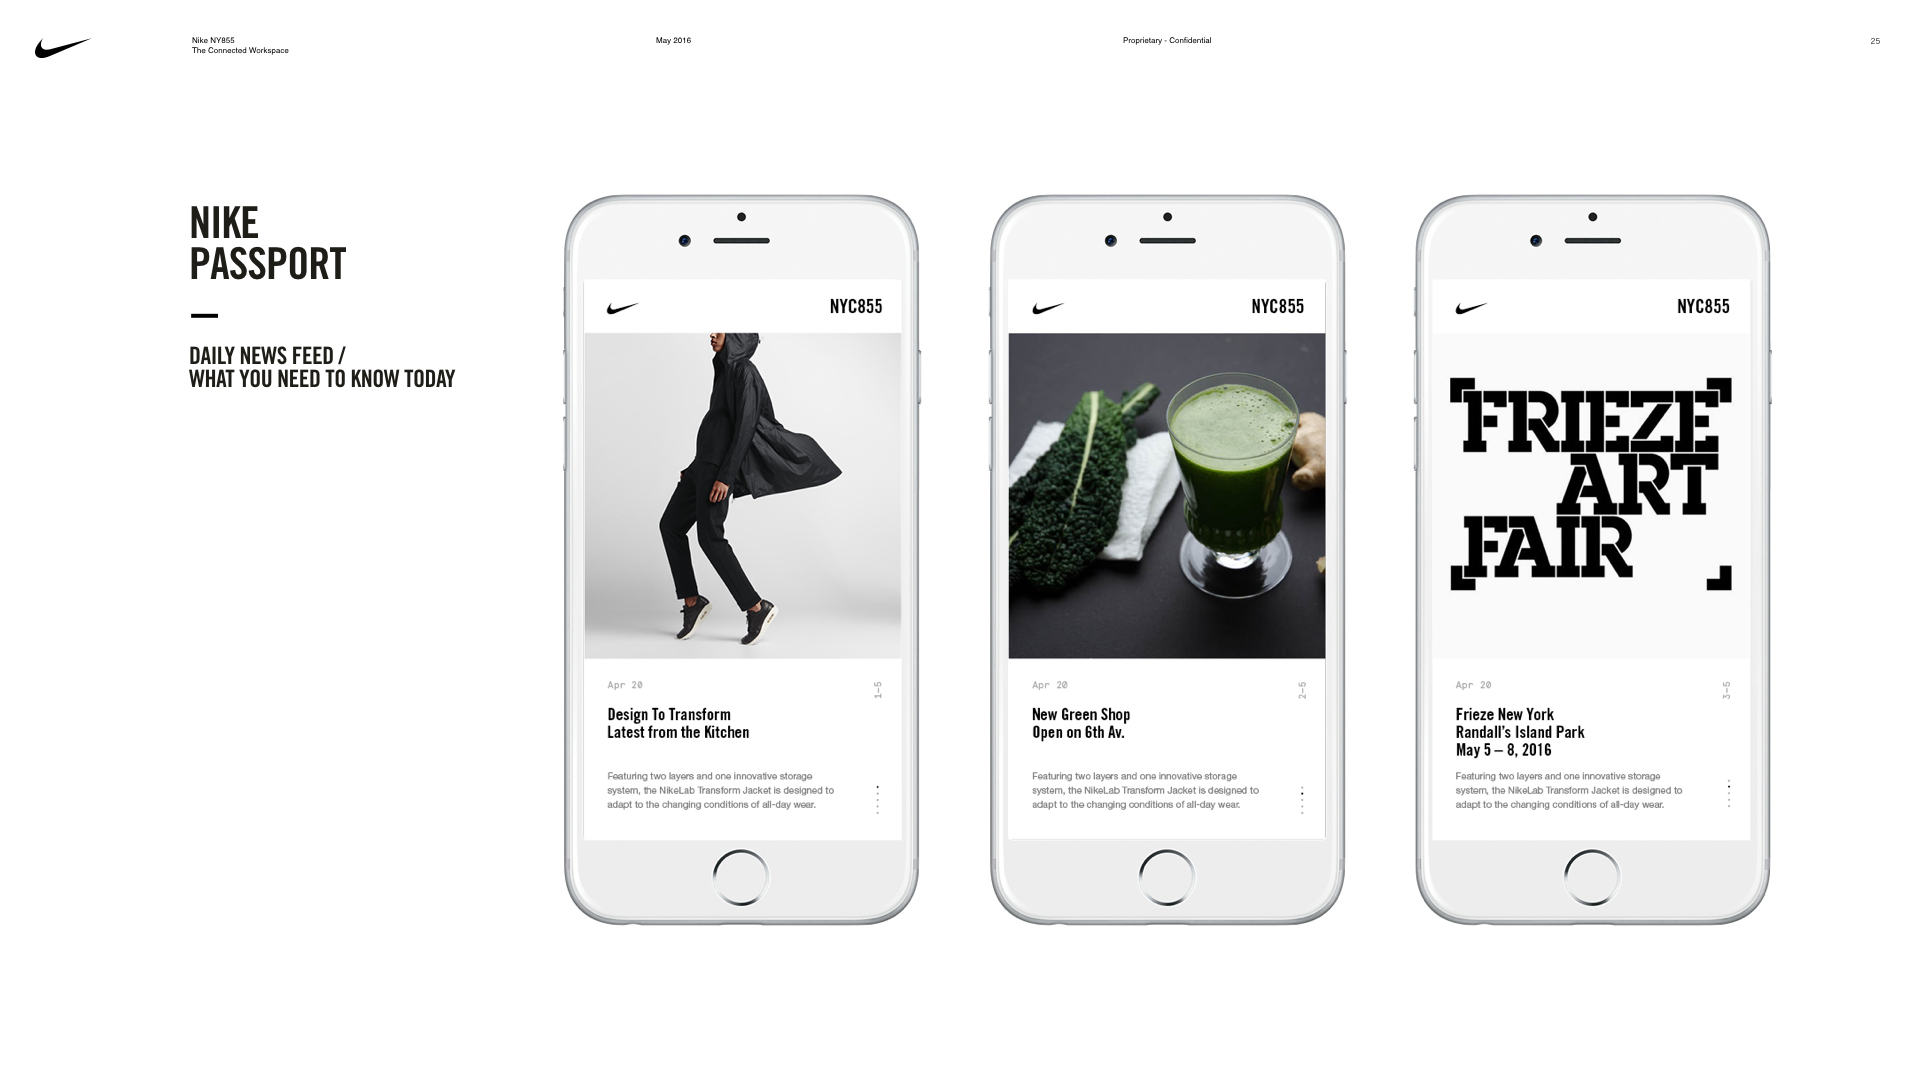 A daily news feed to keep employees up to date on everything relevant related to culture, NYC, and Nike.